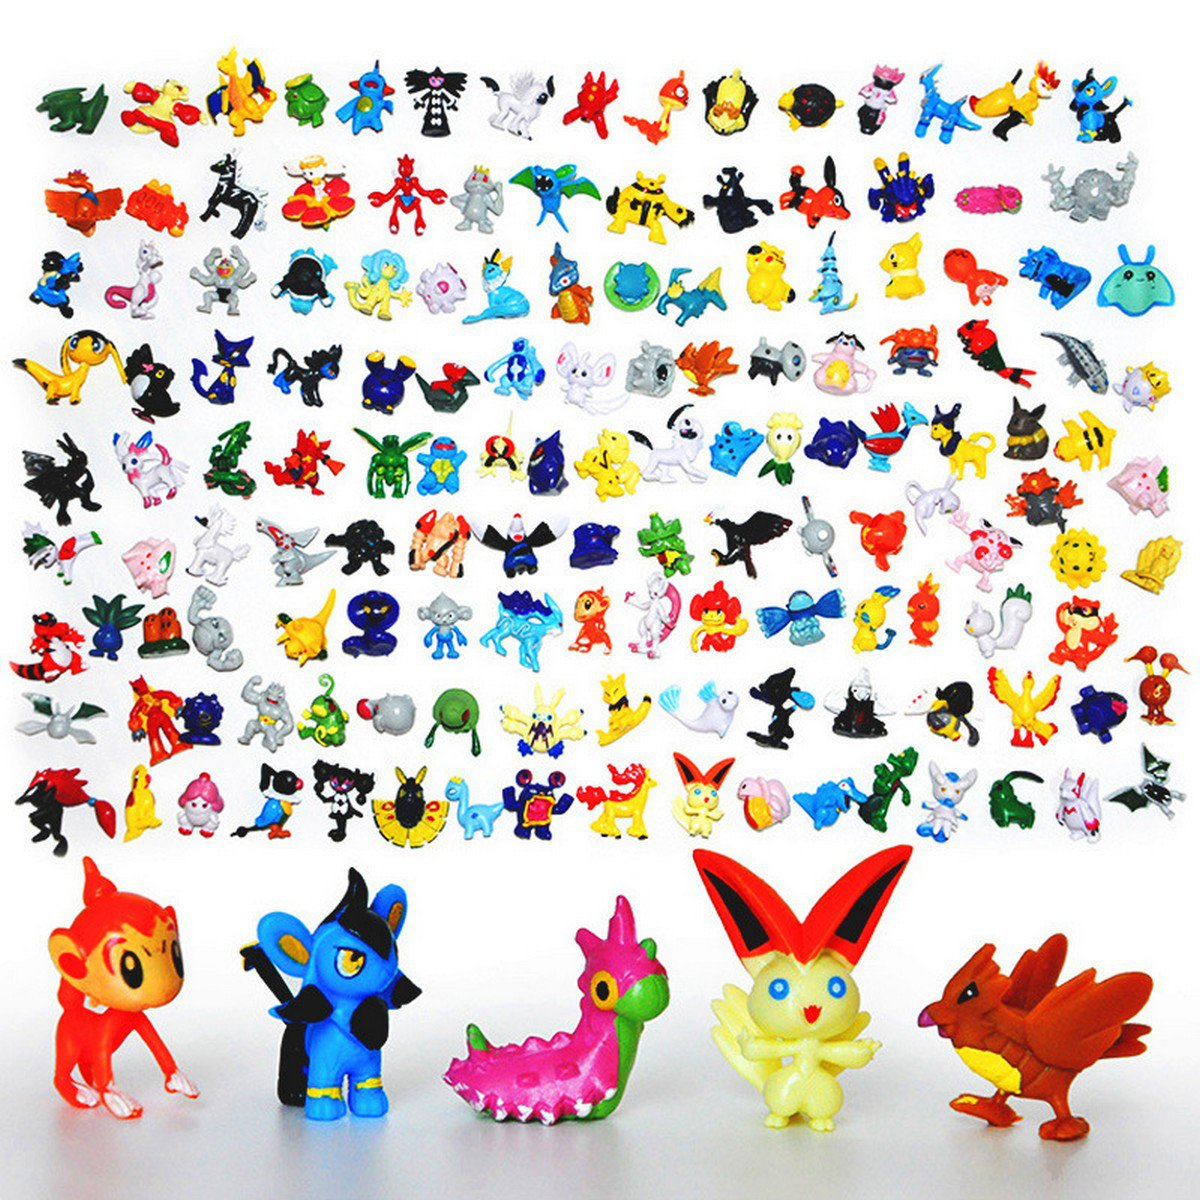 Buy 144PCSLot 2 3CM Pokemon Figure Toys different Styles New Cute Cartoon Monster model Pikachu Sup